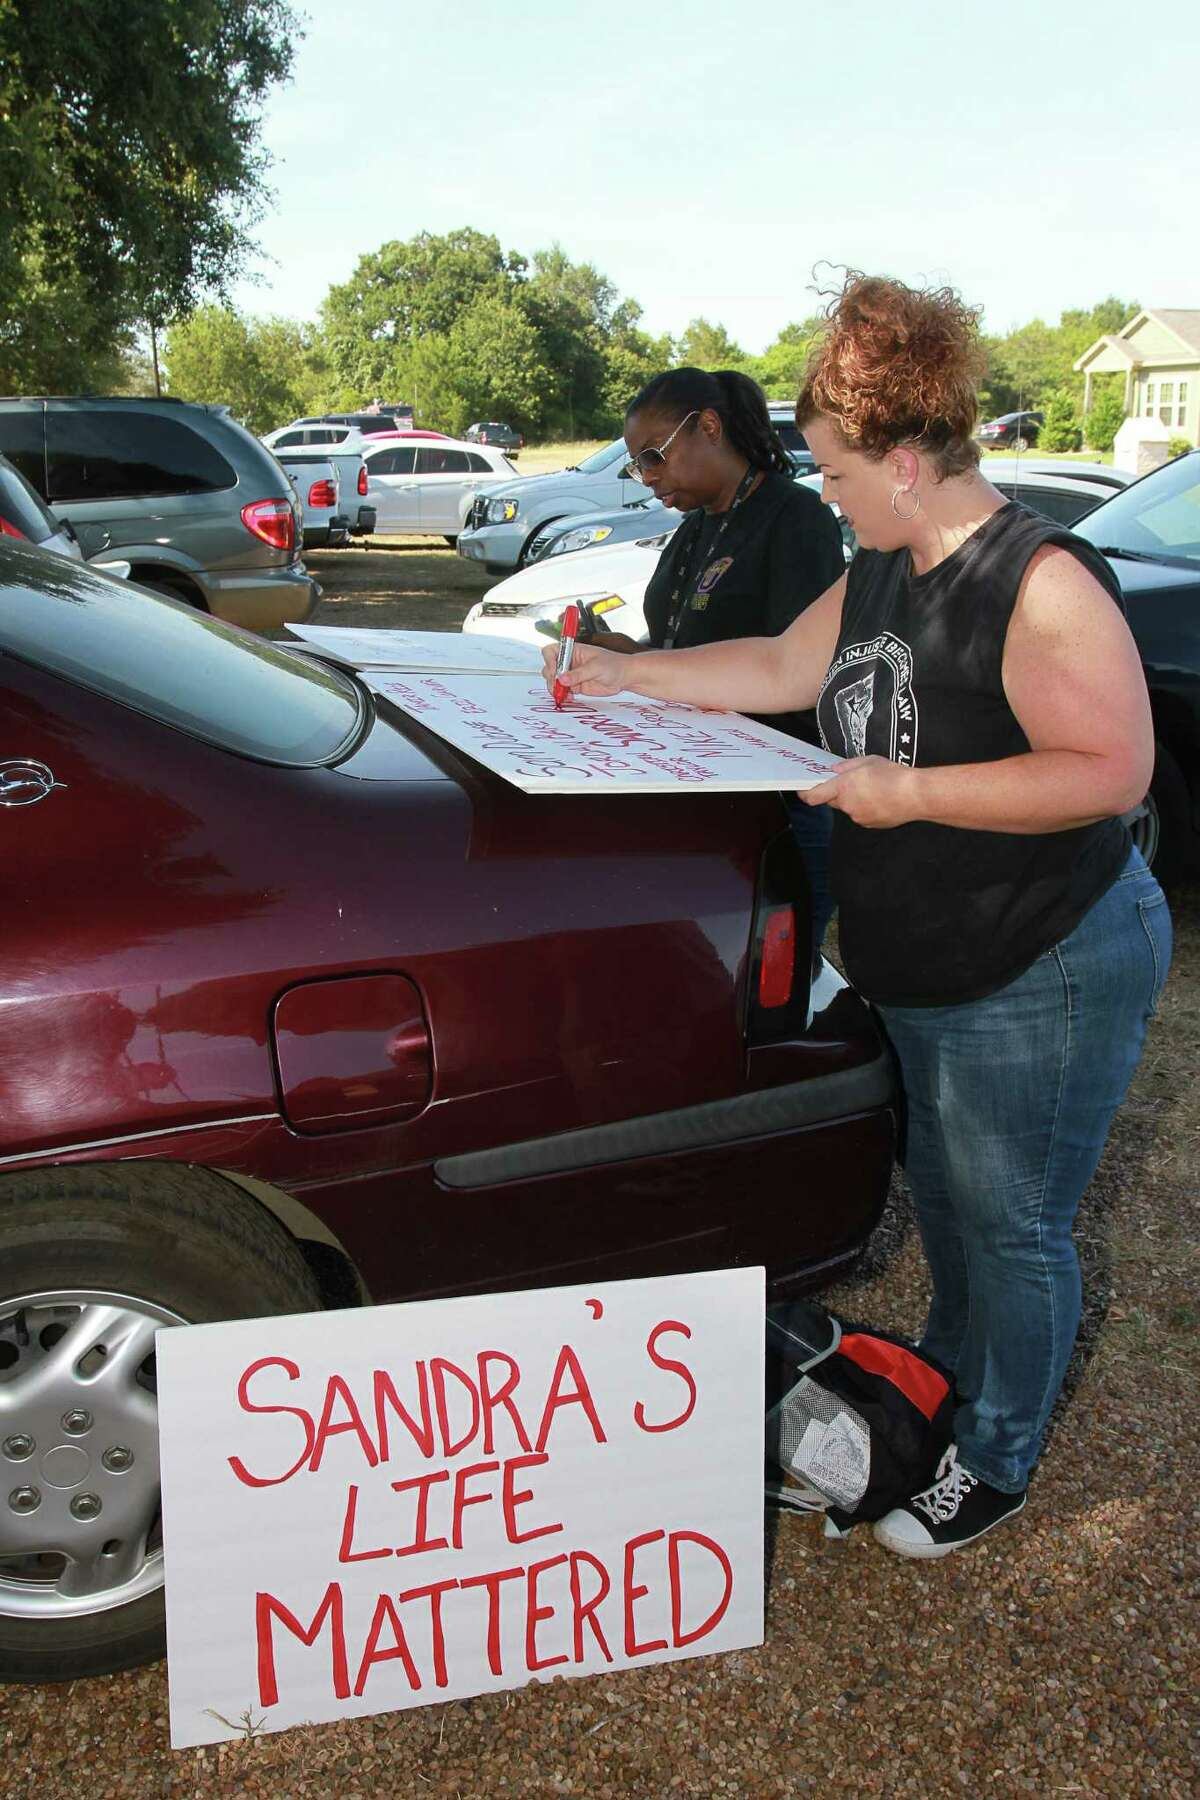 Gizelle Tolbert, left, and Shere Dore make signs for a rally Sunday at the Waller County Jail, where Sandra Bland died in custody last month after being arrested during a traffic stop.